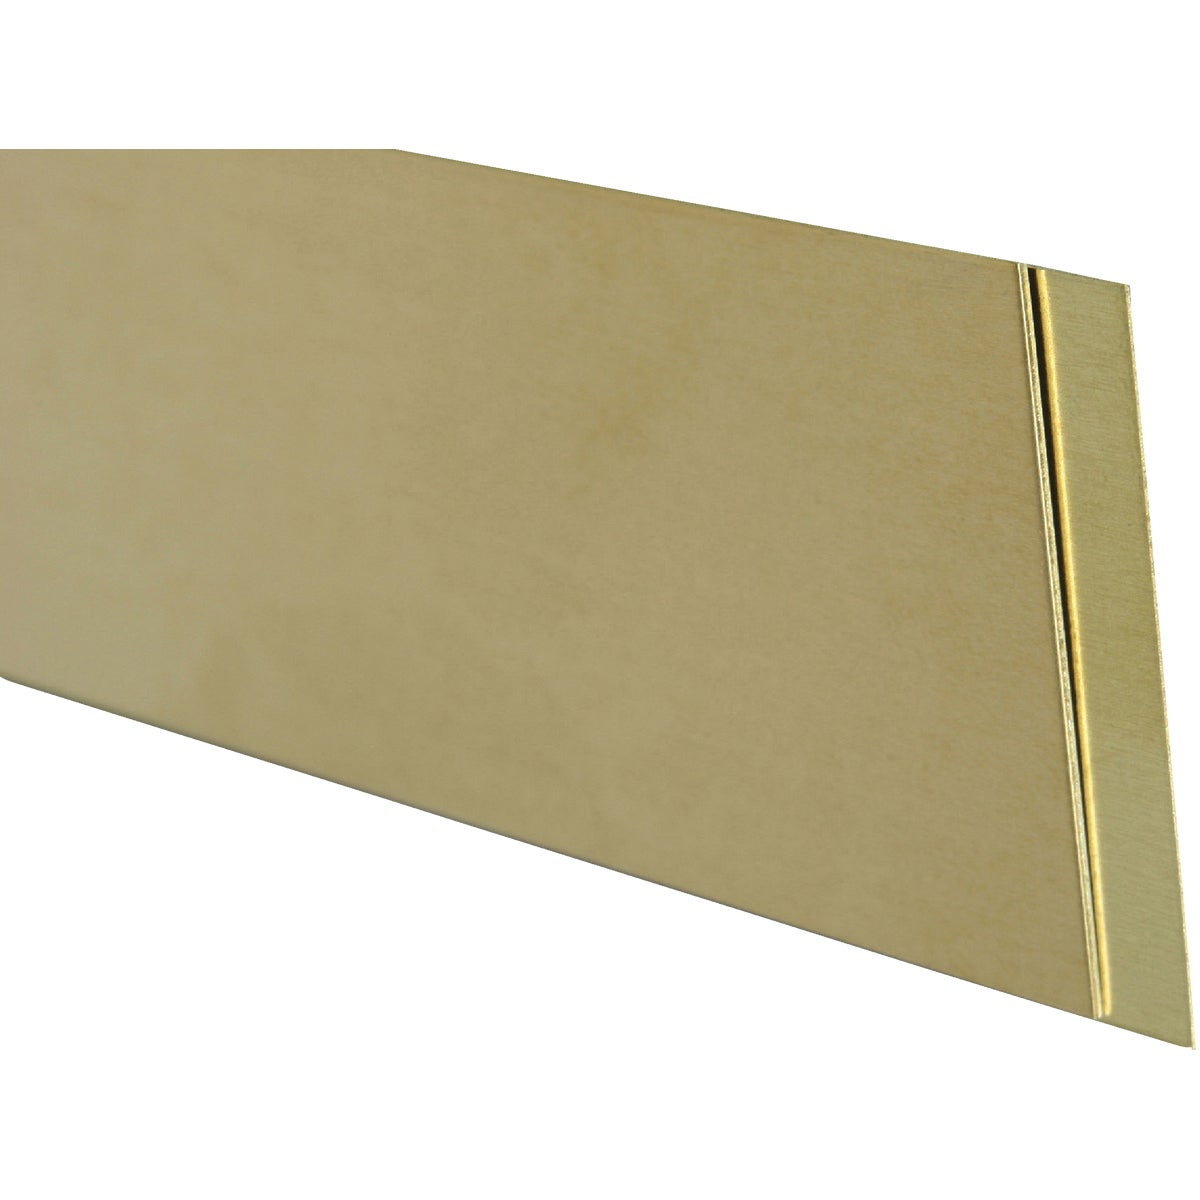 .016X1/4X12 BRASS STRIP - 8230 by K&s Precision Metals